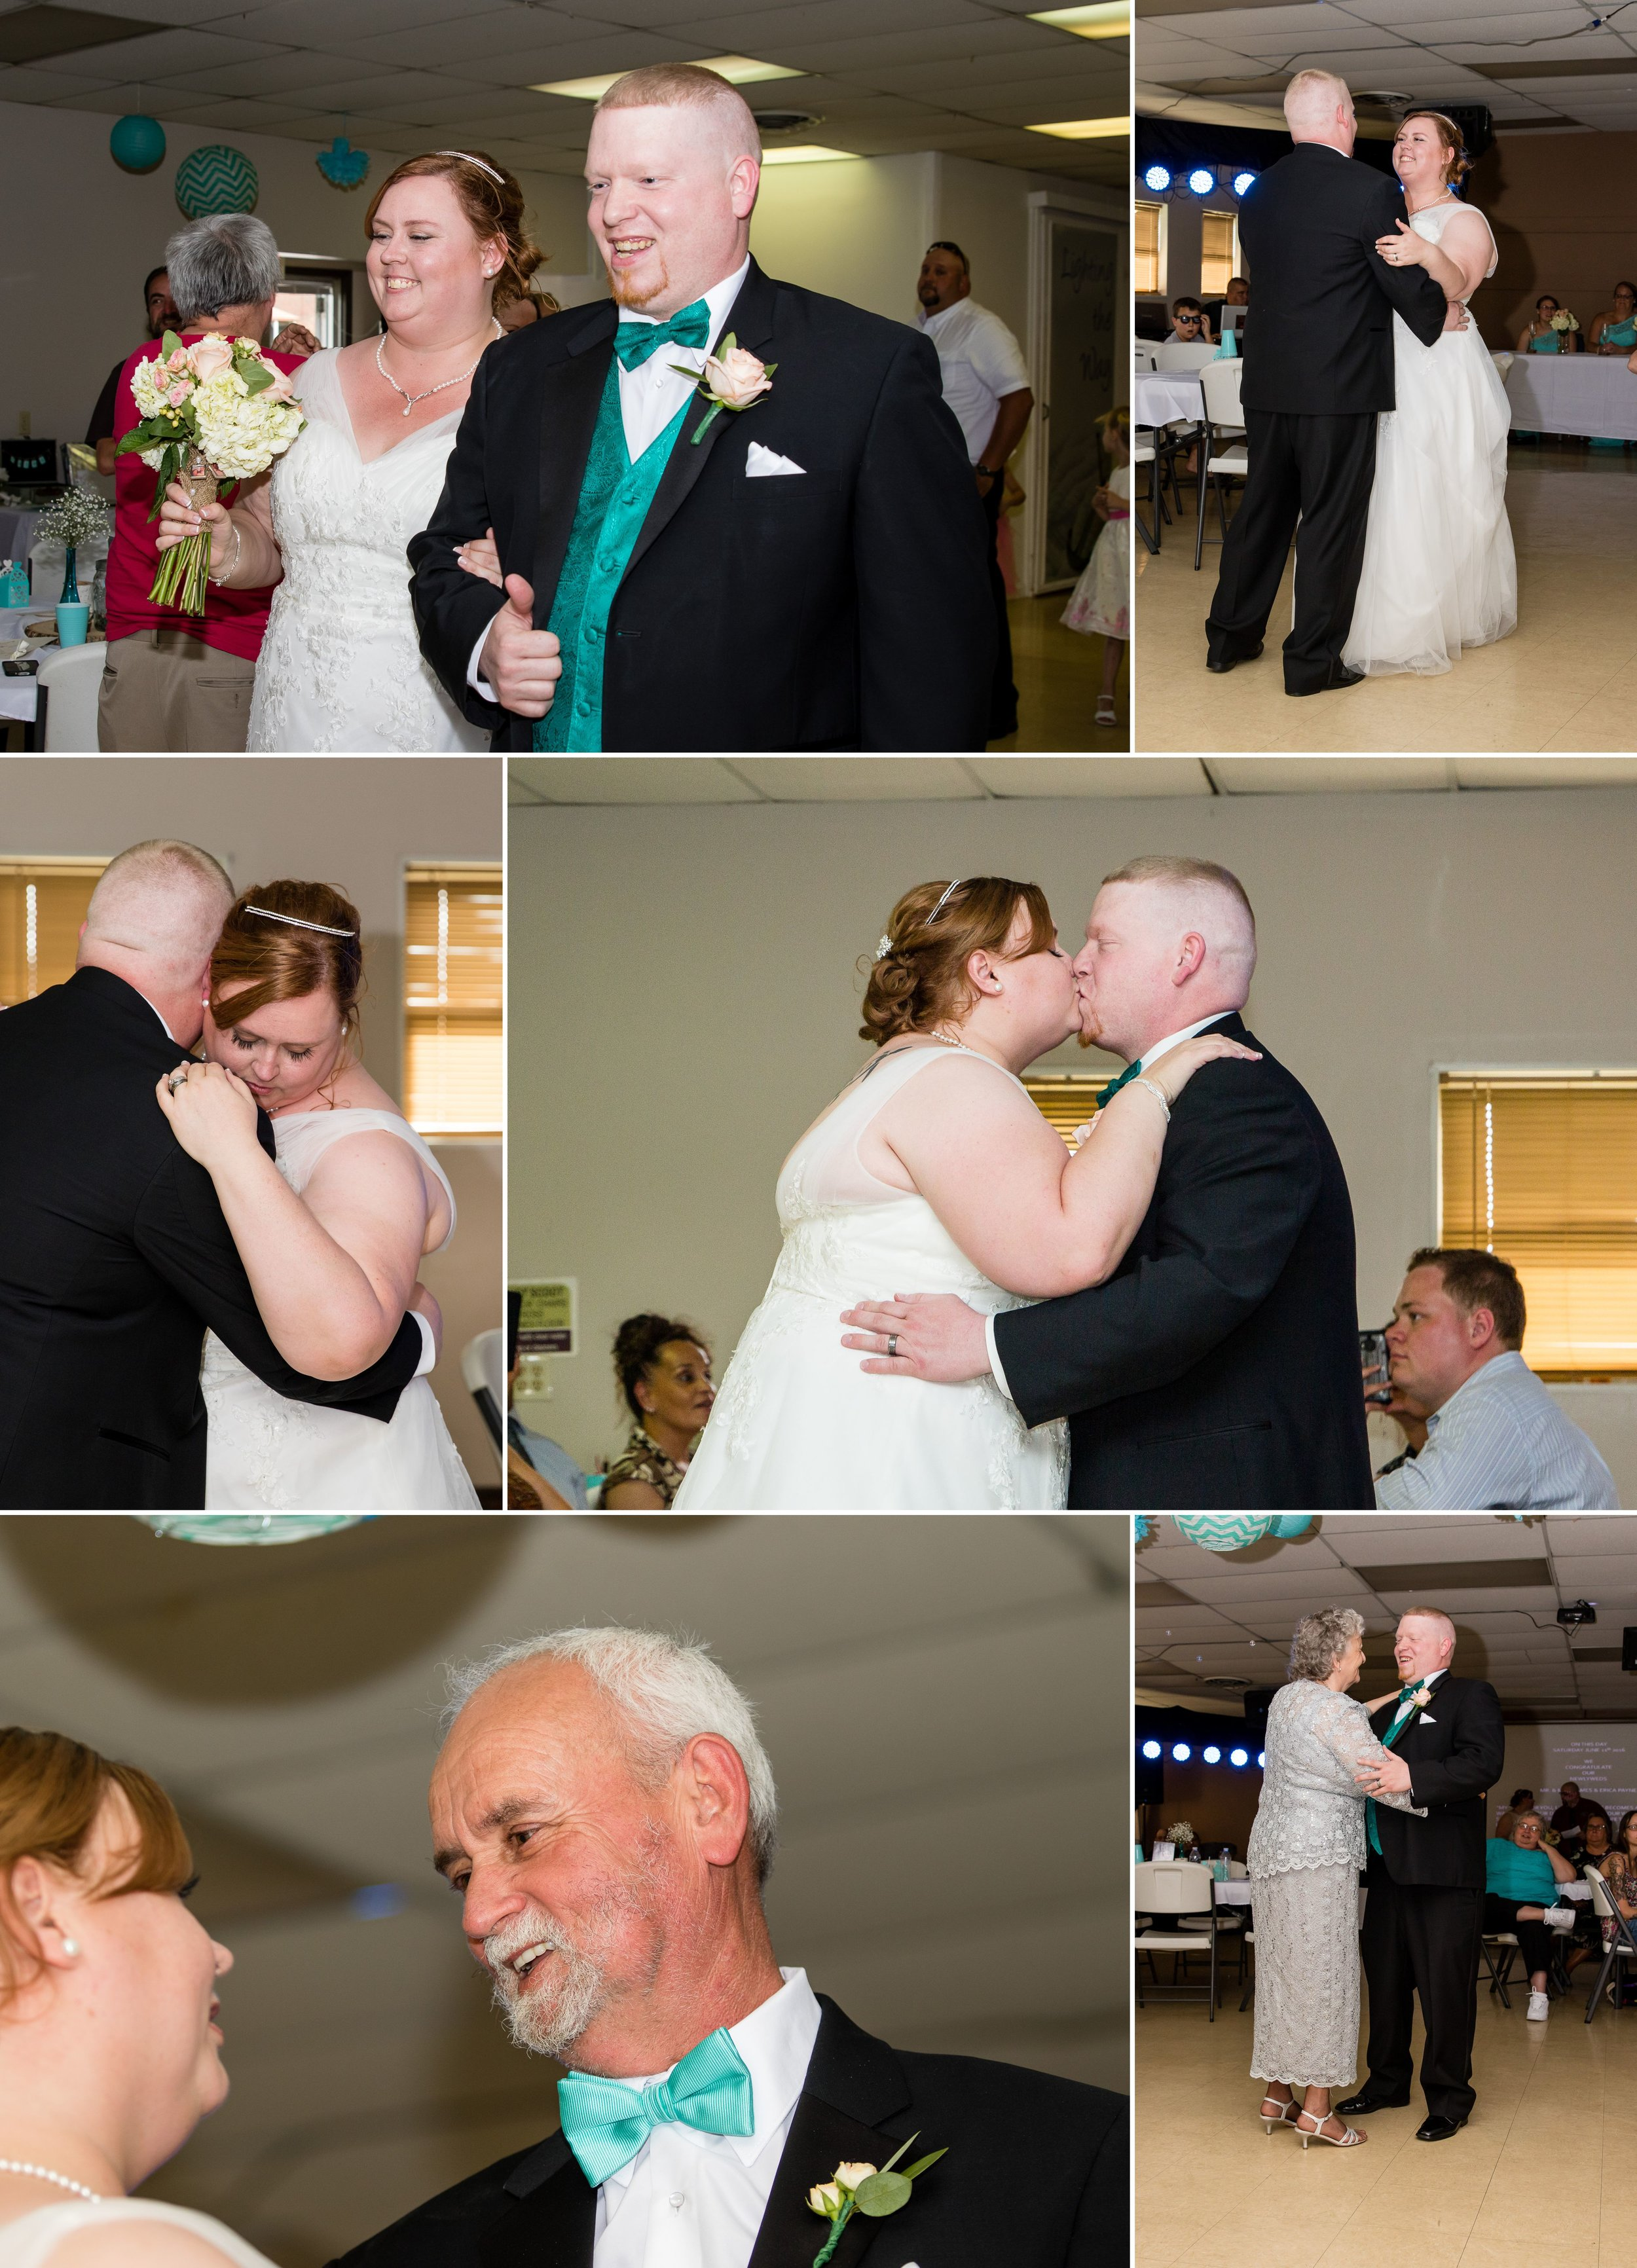 lighthouse-christian-ministries-wedding-ceremony-schiller-park-portraits-columbus-ohio-muschlitz-photography-014.JPG